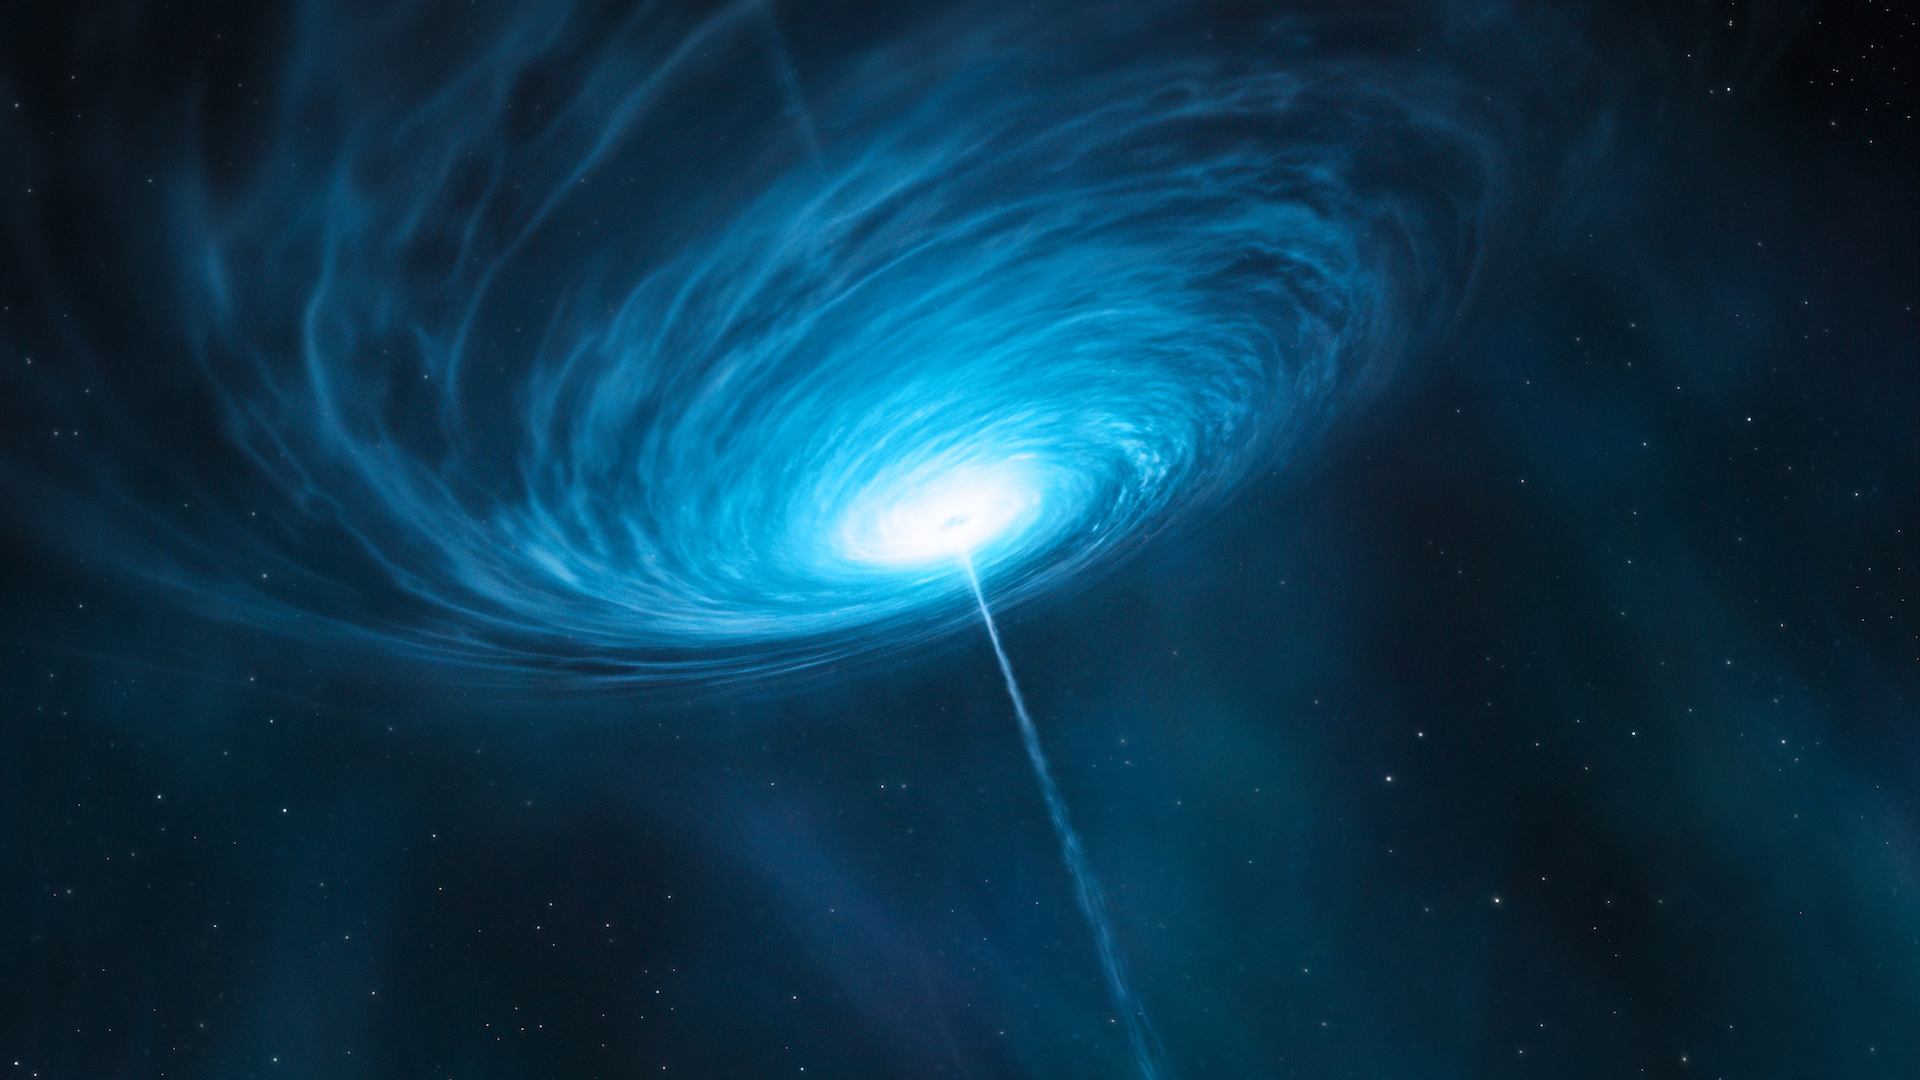 Quasars are the very bright centers of distant galaxies that are powered by supermassive black holes.